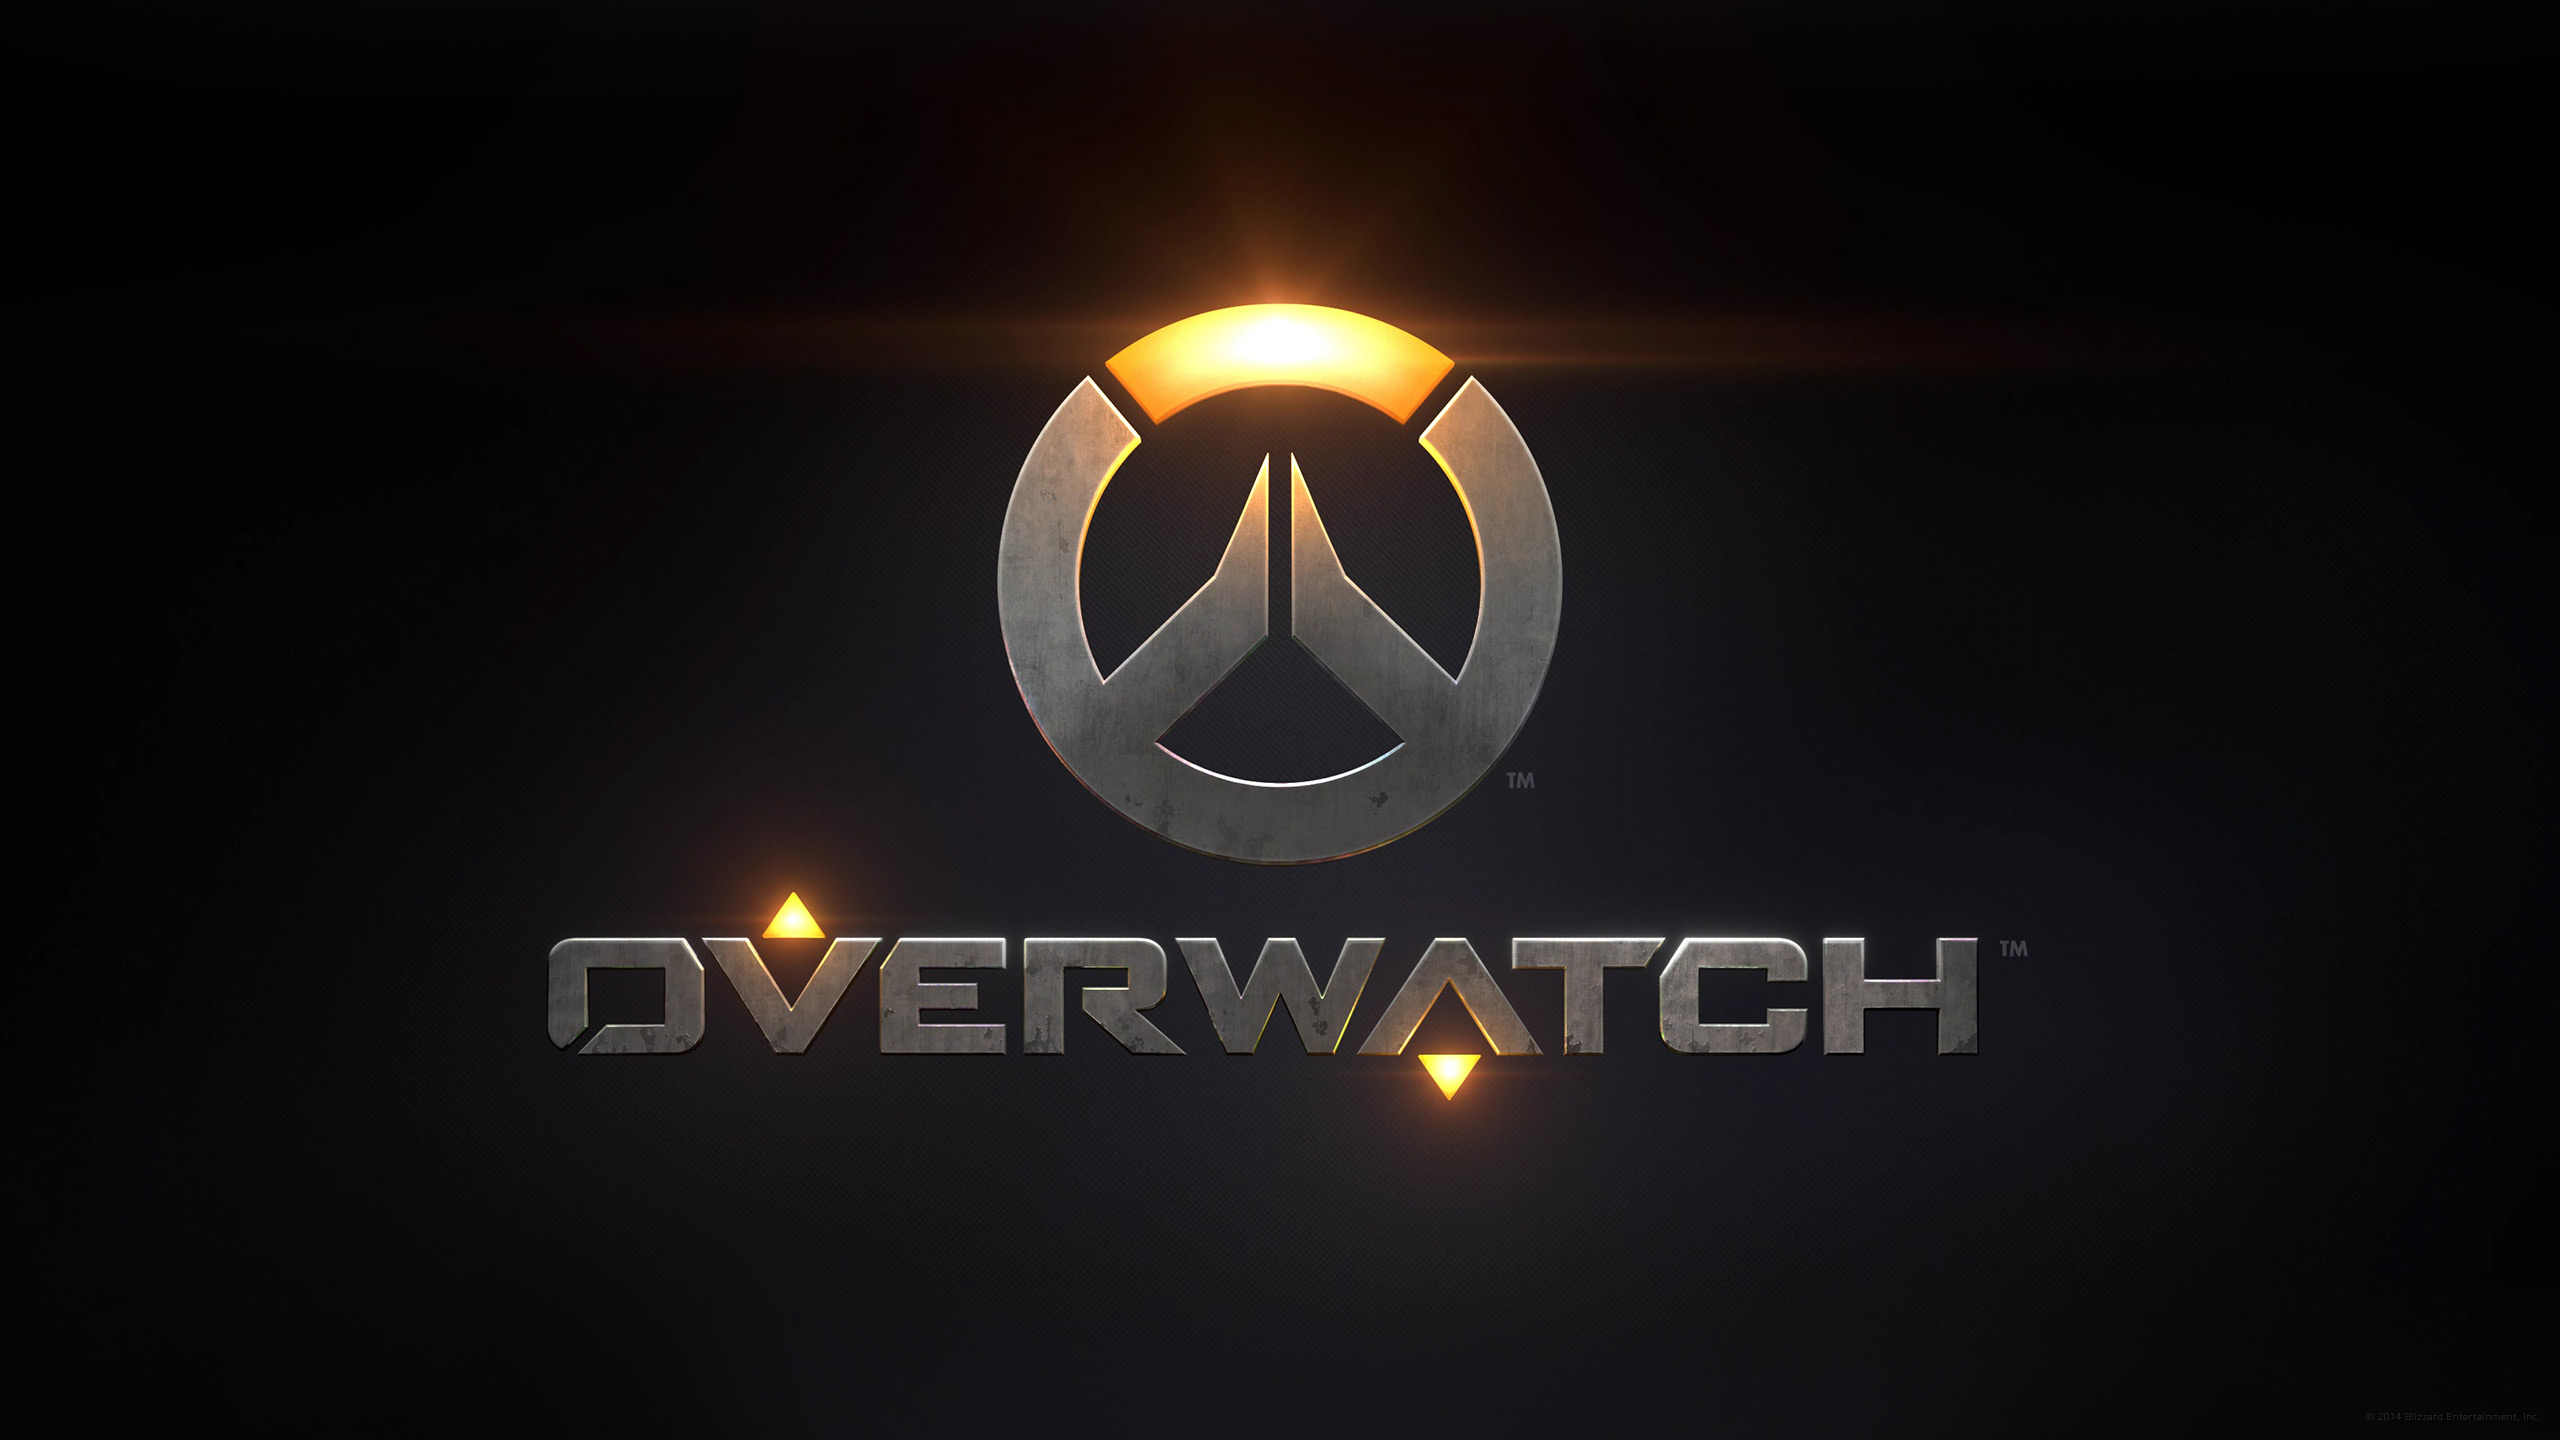 Overwatch Releases Video Detailing their Plans for the New Year